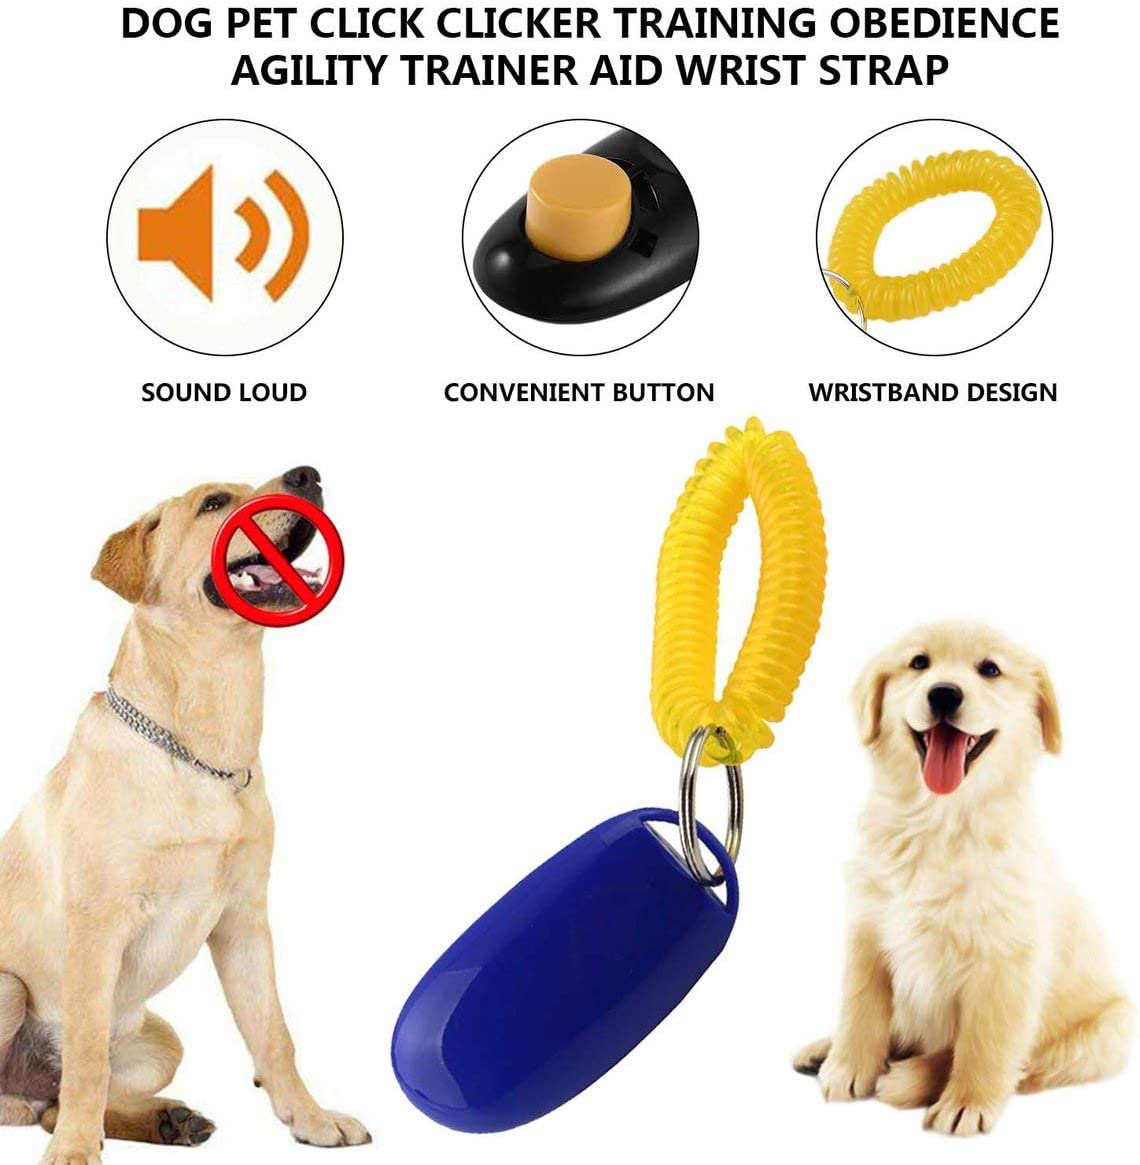 Dog Pet Click Clicker Training Obedience Agility Trainer Aid Wrist Strap Great for training Obedience//HTM//Agility Pet Supplies#Pennytupu